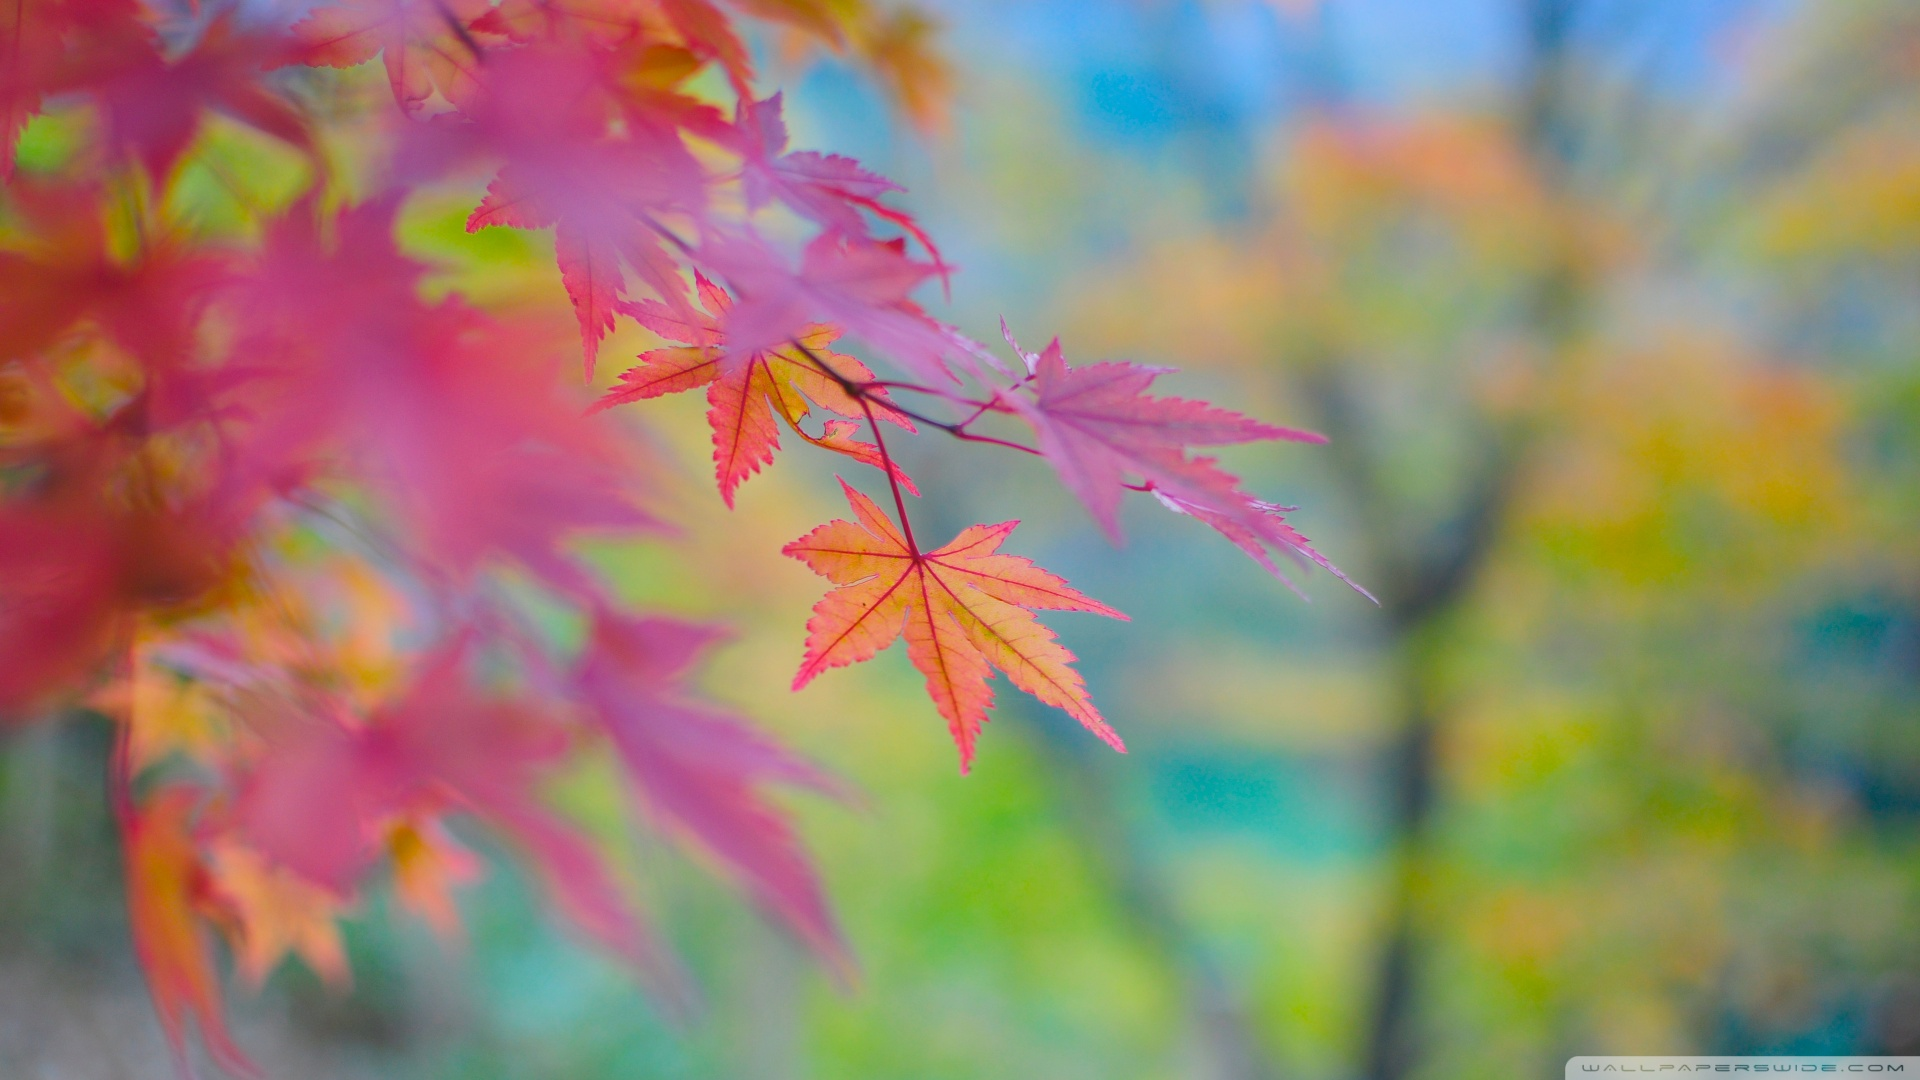 Autumn Colors In Japan HD desktop wallpaper : High Definition